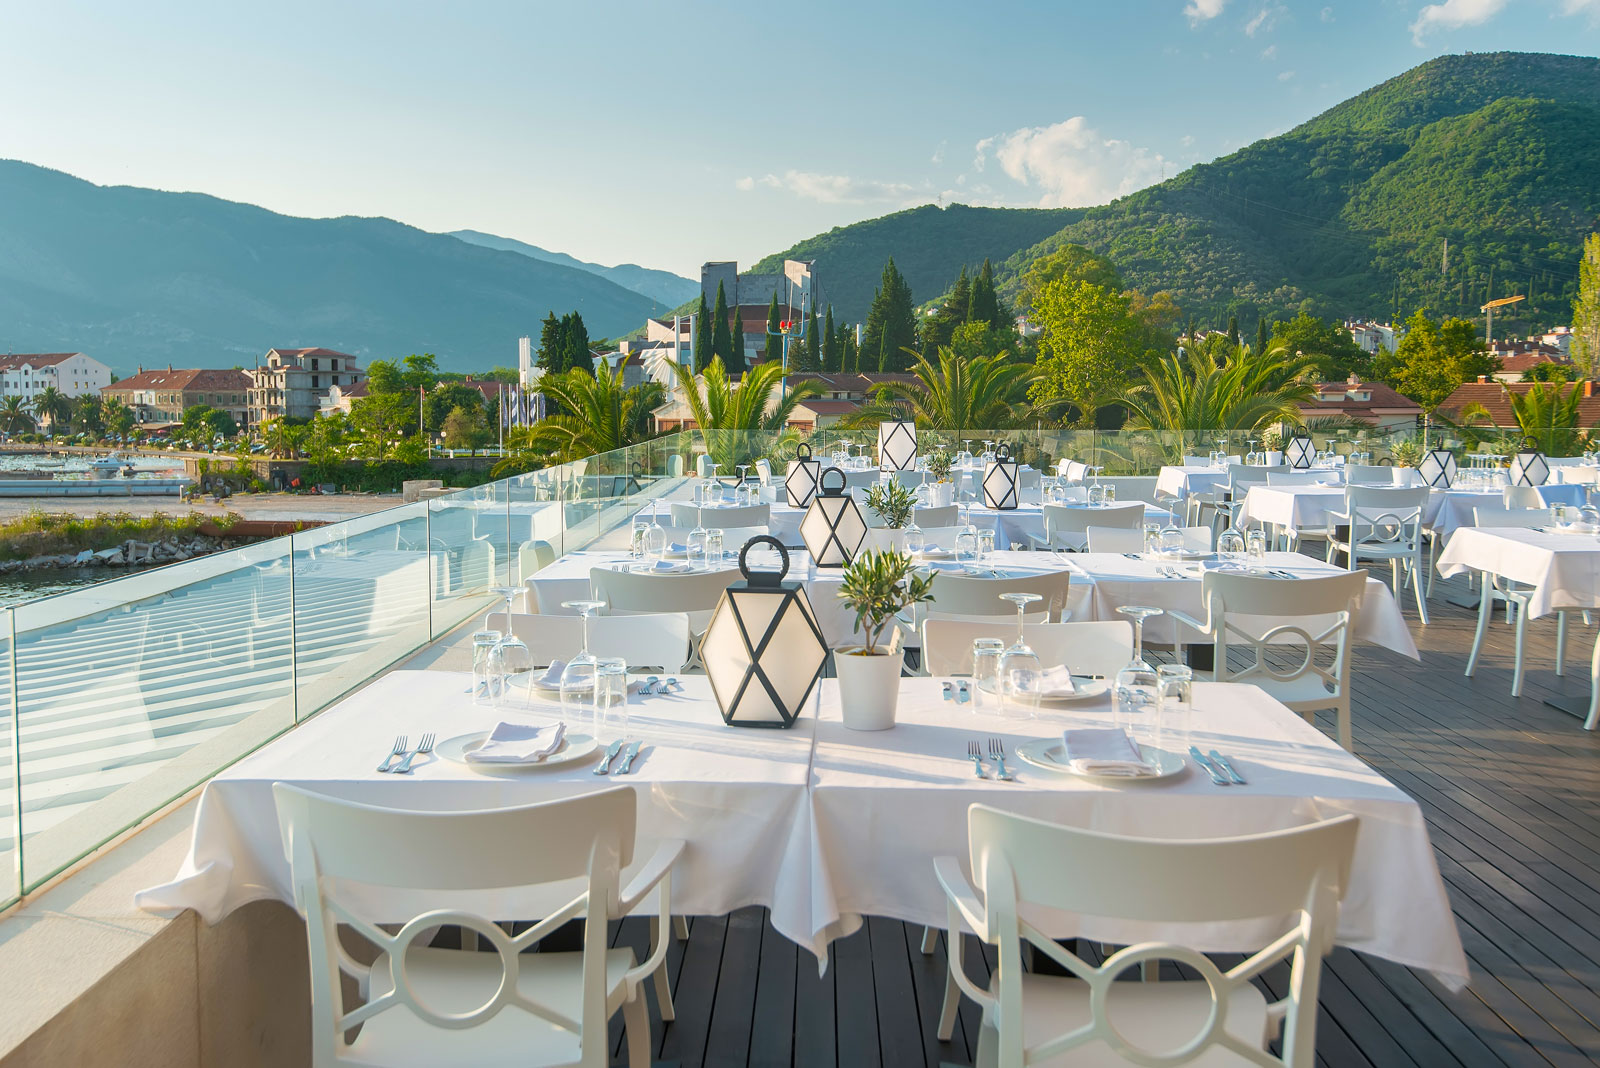 Porto Montenegro Yacht Club Pool Joins The Ranks Of The World's Best 7